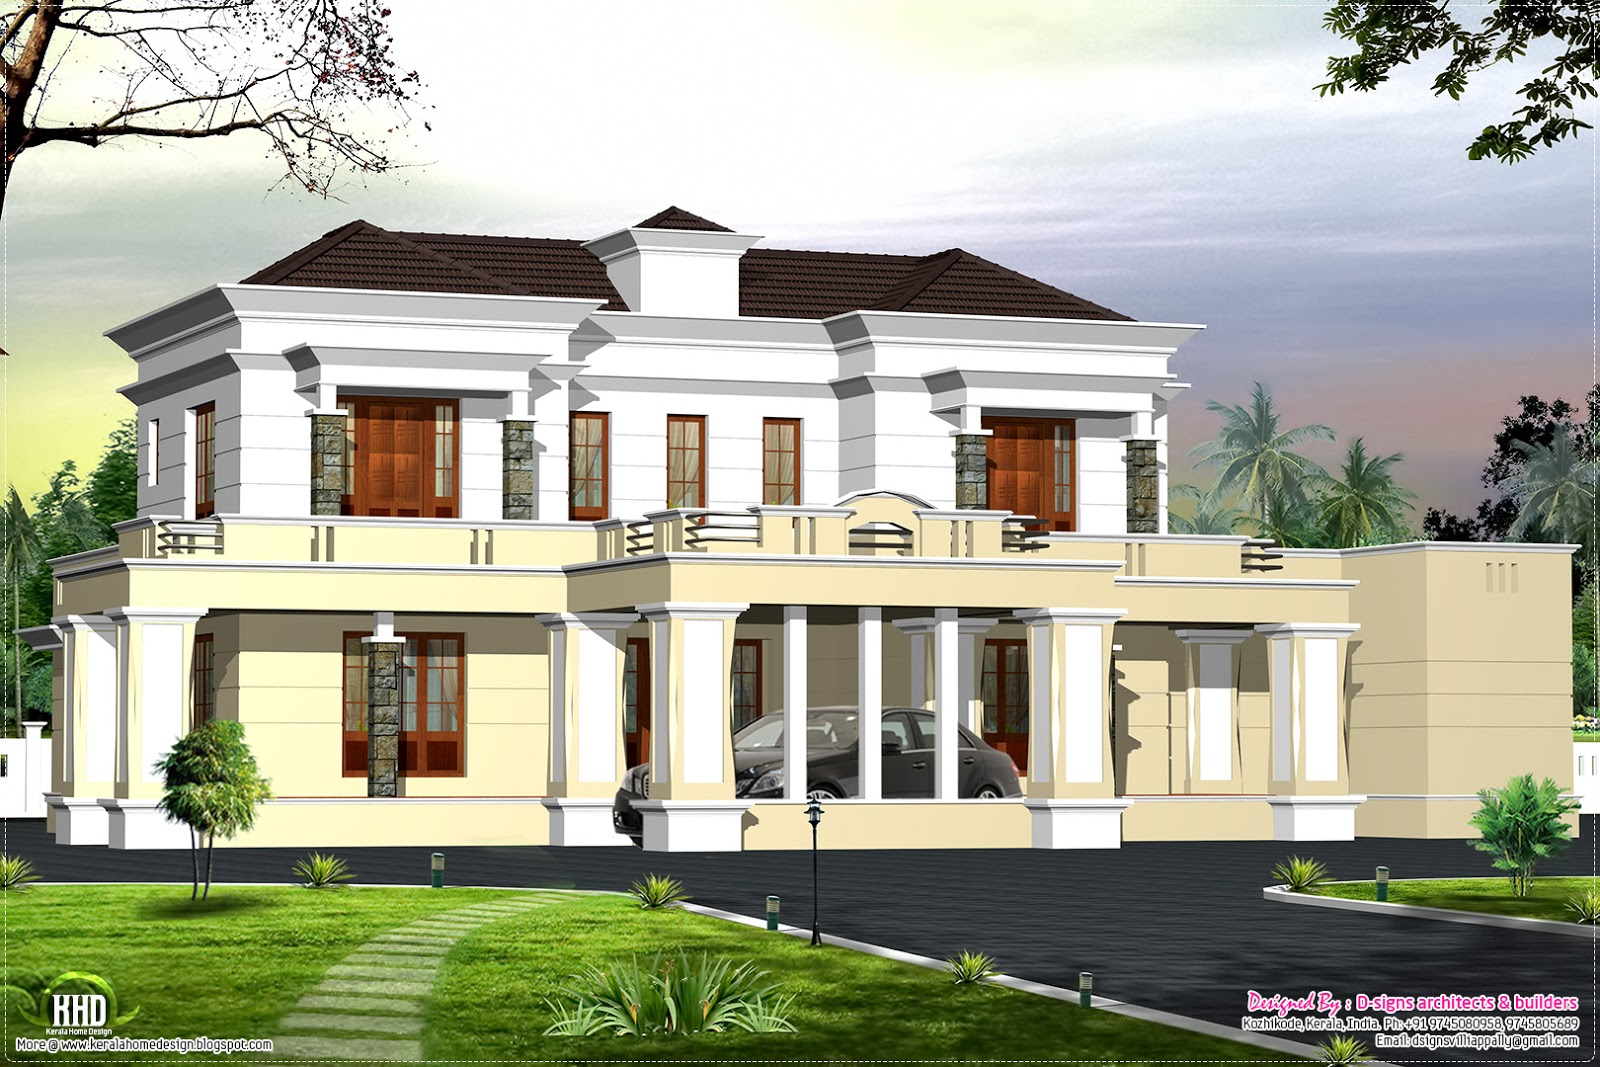 Victorian style luxury home design kerala home design for Luxury home architect